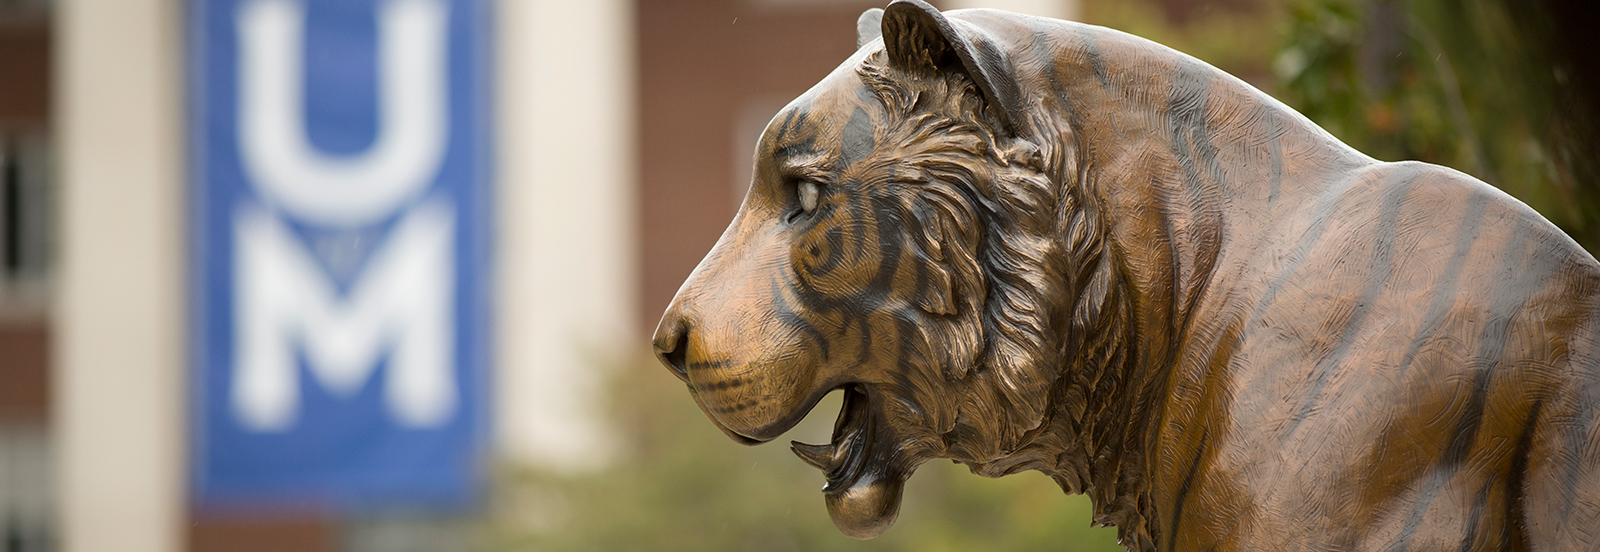 bronze tiger in front of UofM logo